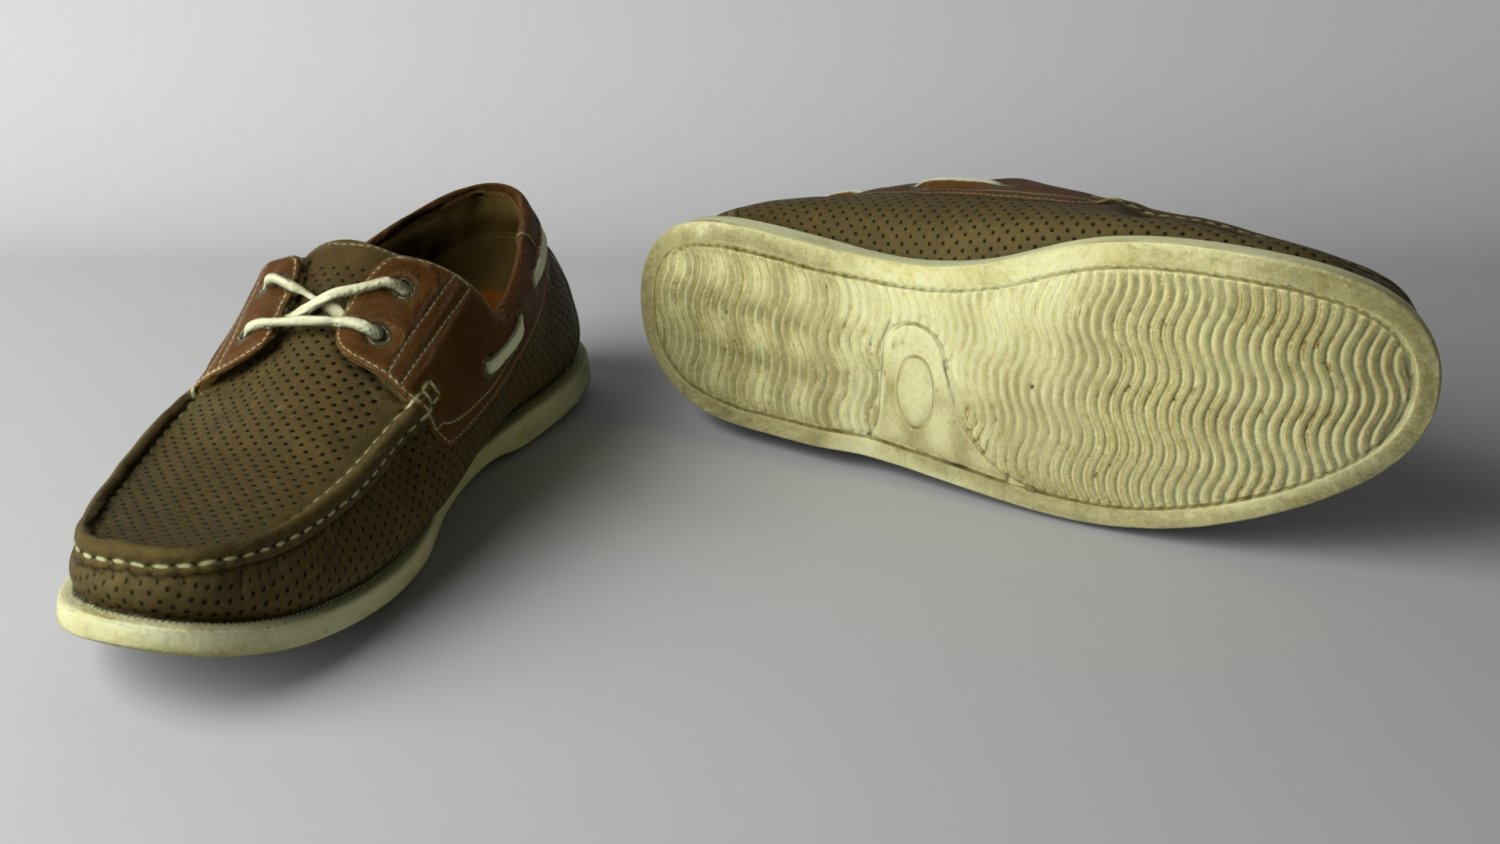 203e29dc7ca39a Leather shoes 3D Model in Clothing 3DExport